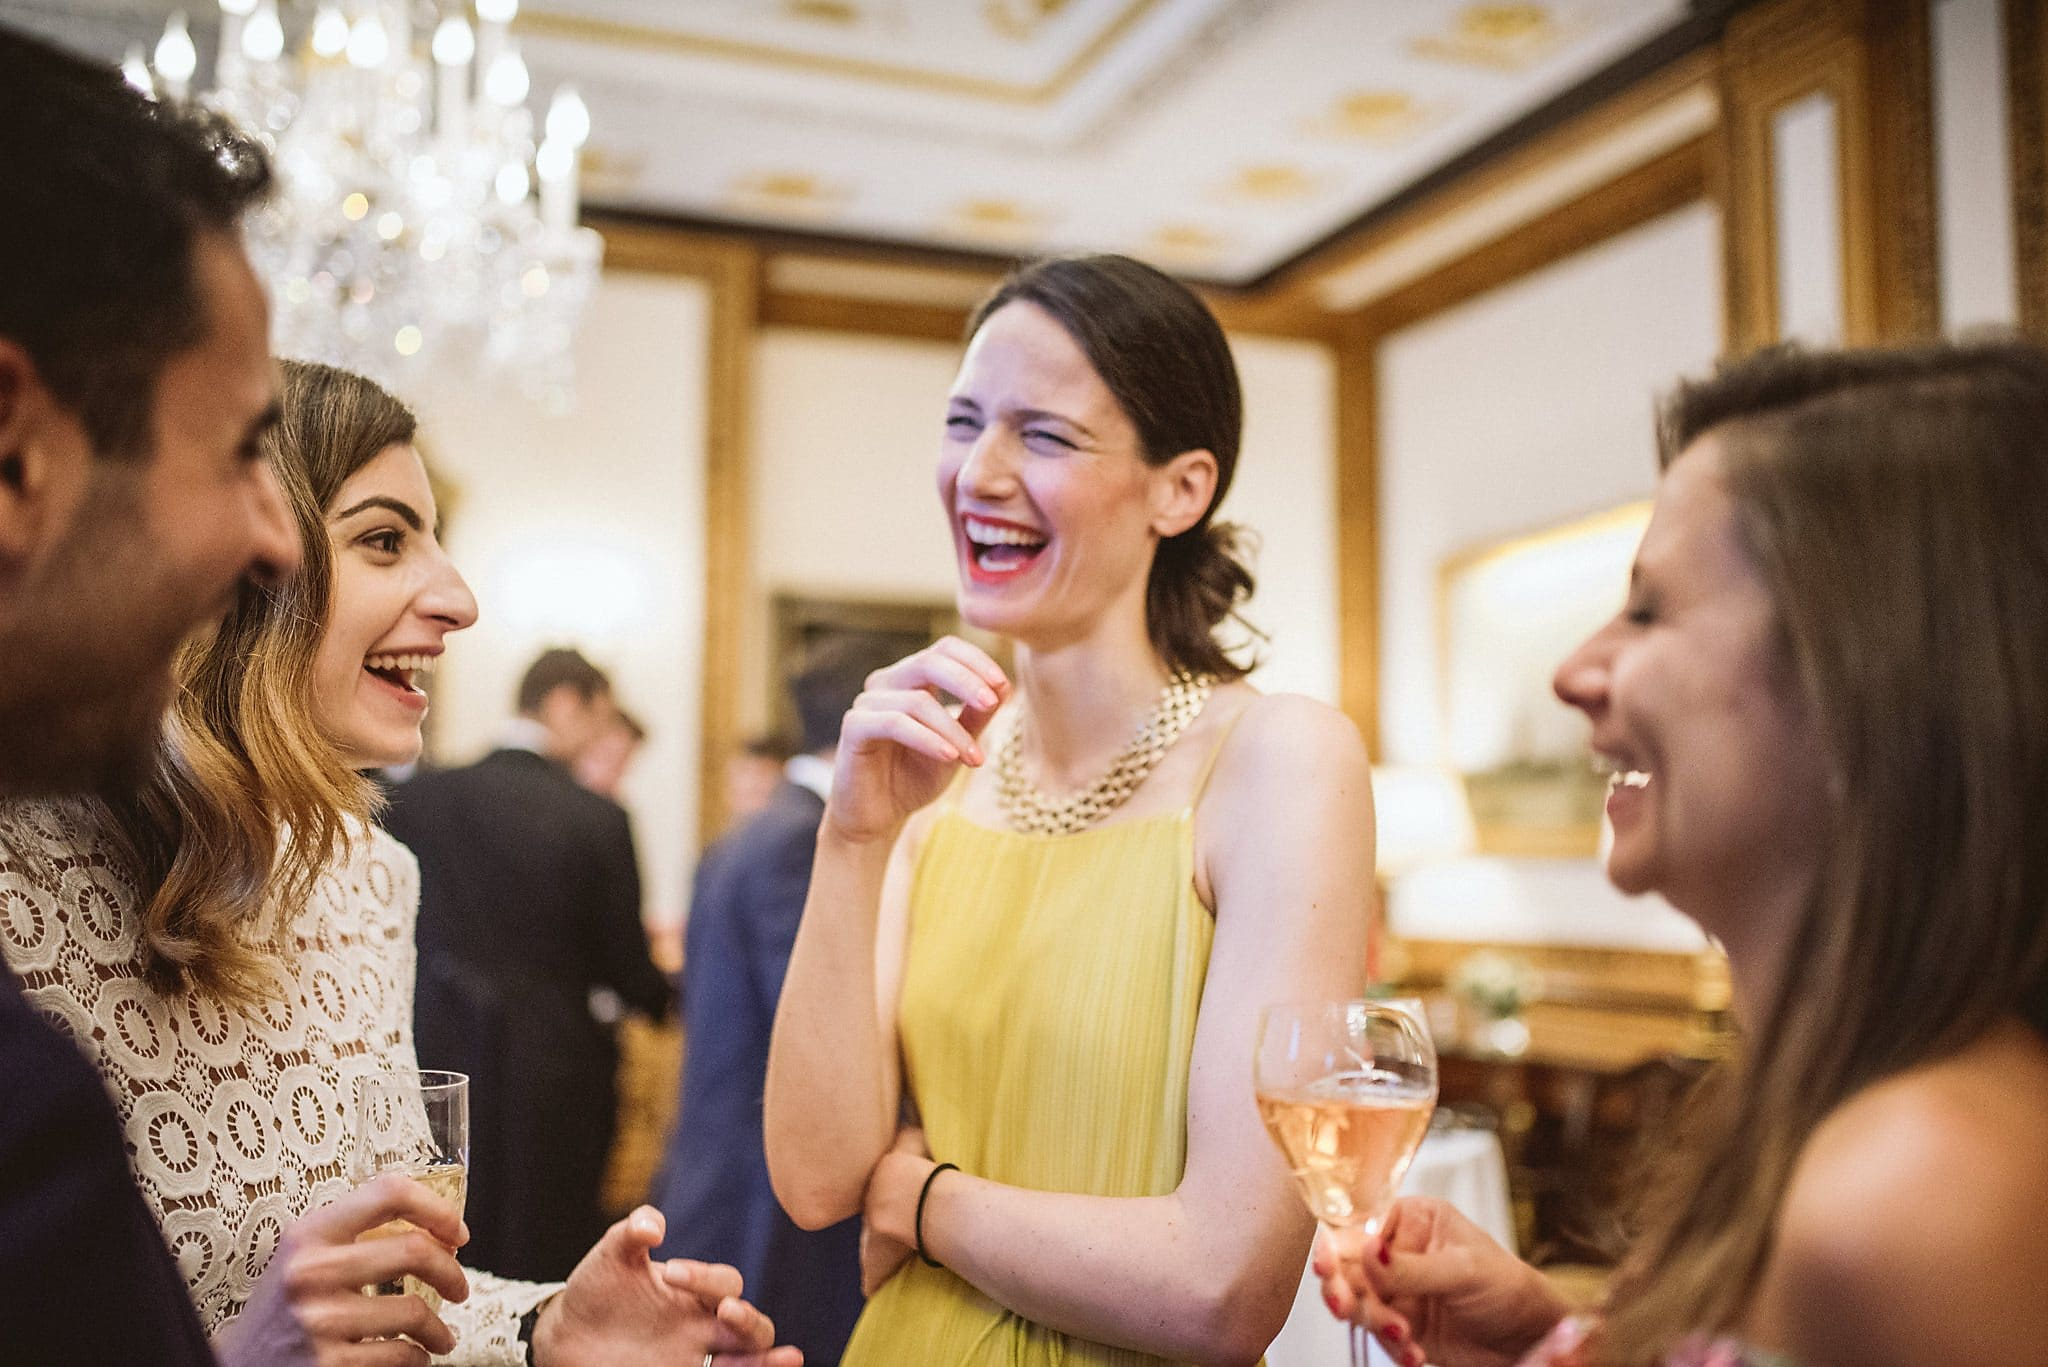 Wedding Guest in yellow dress laughing with the bride and groom